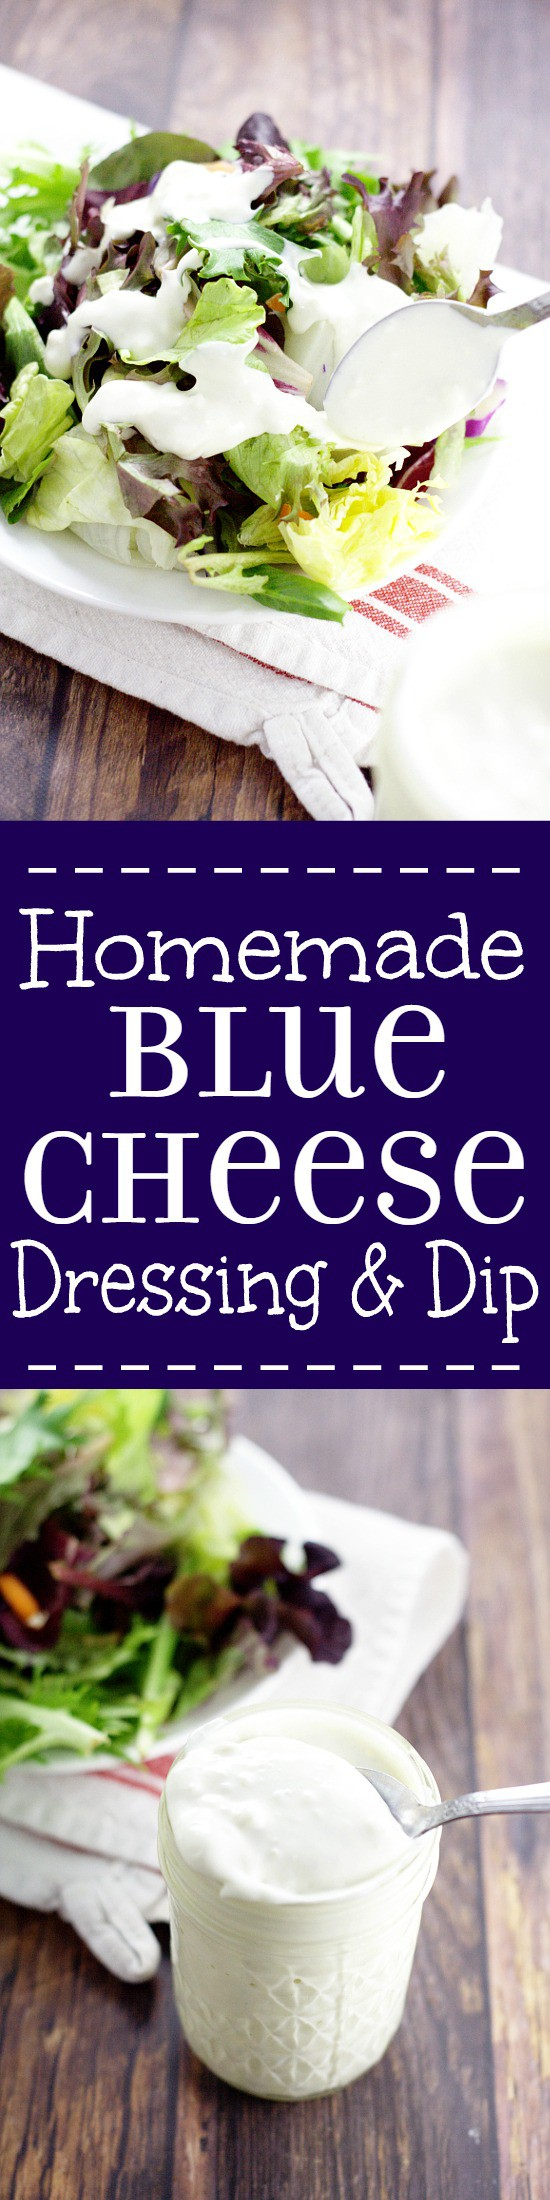 Homemade Buttermilk Blue Cheese Dressing and Dip.This creamy, rich Homemade Buttermilk Blue Cheese Dressing recipe is the perfect dip for hot wings or dressing for your favorite salad. Definitely trying this!